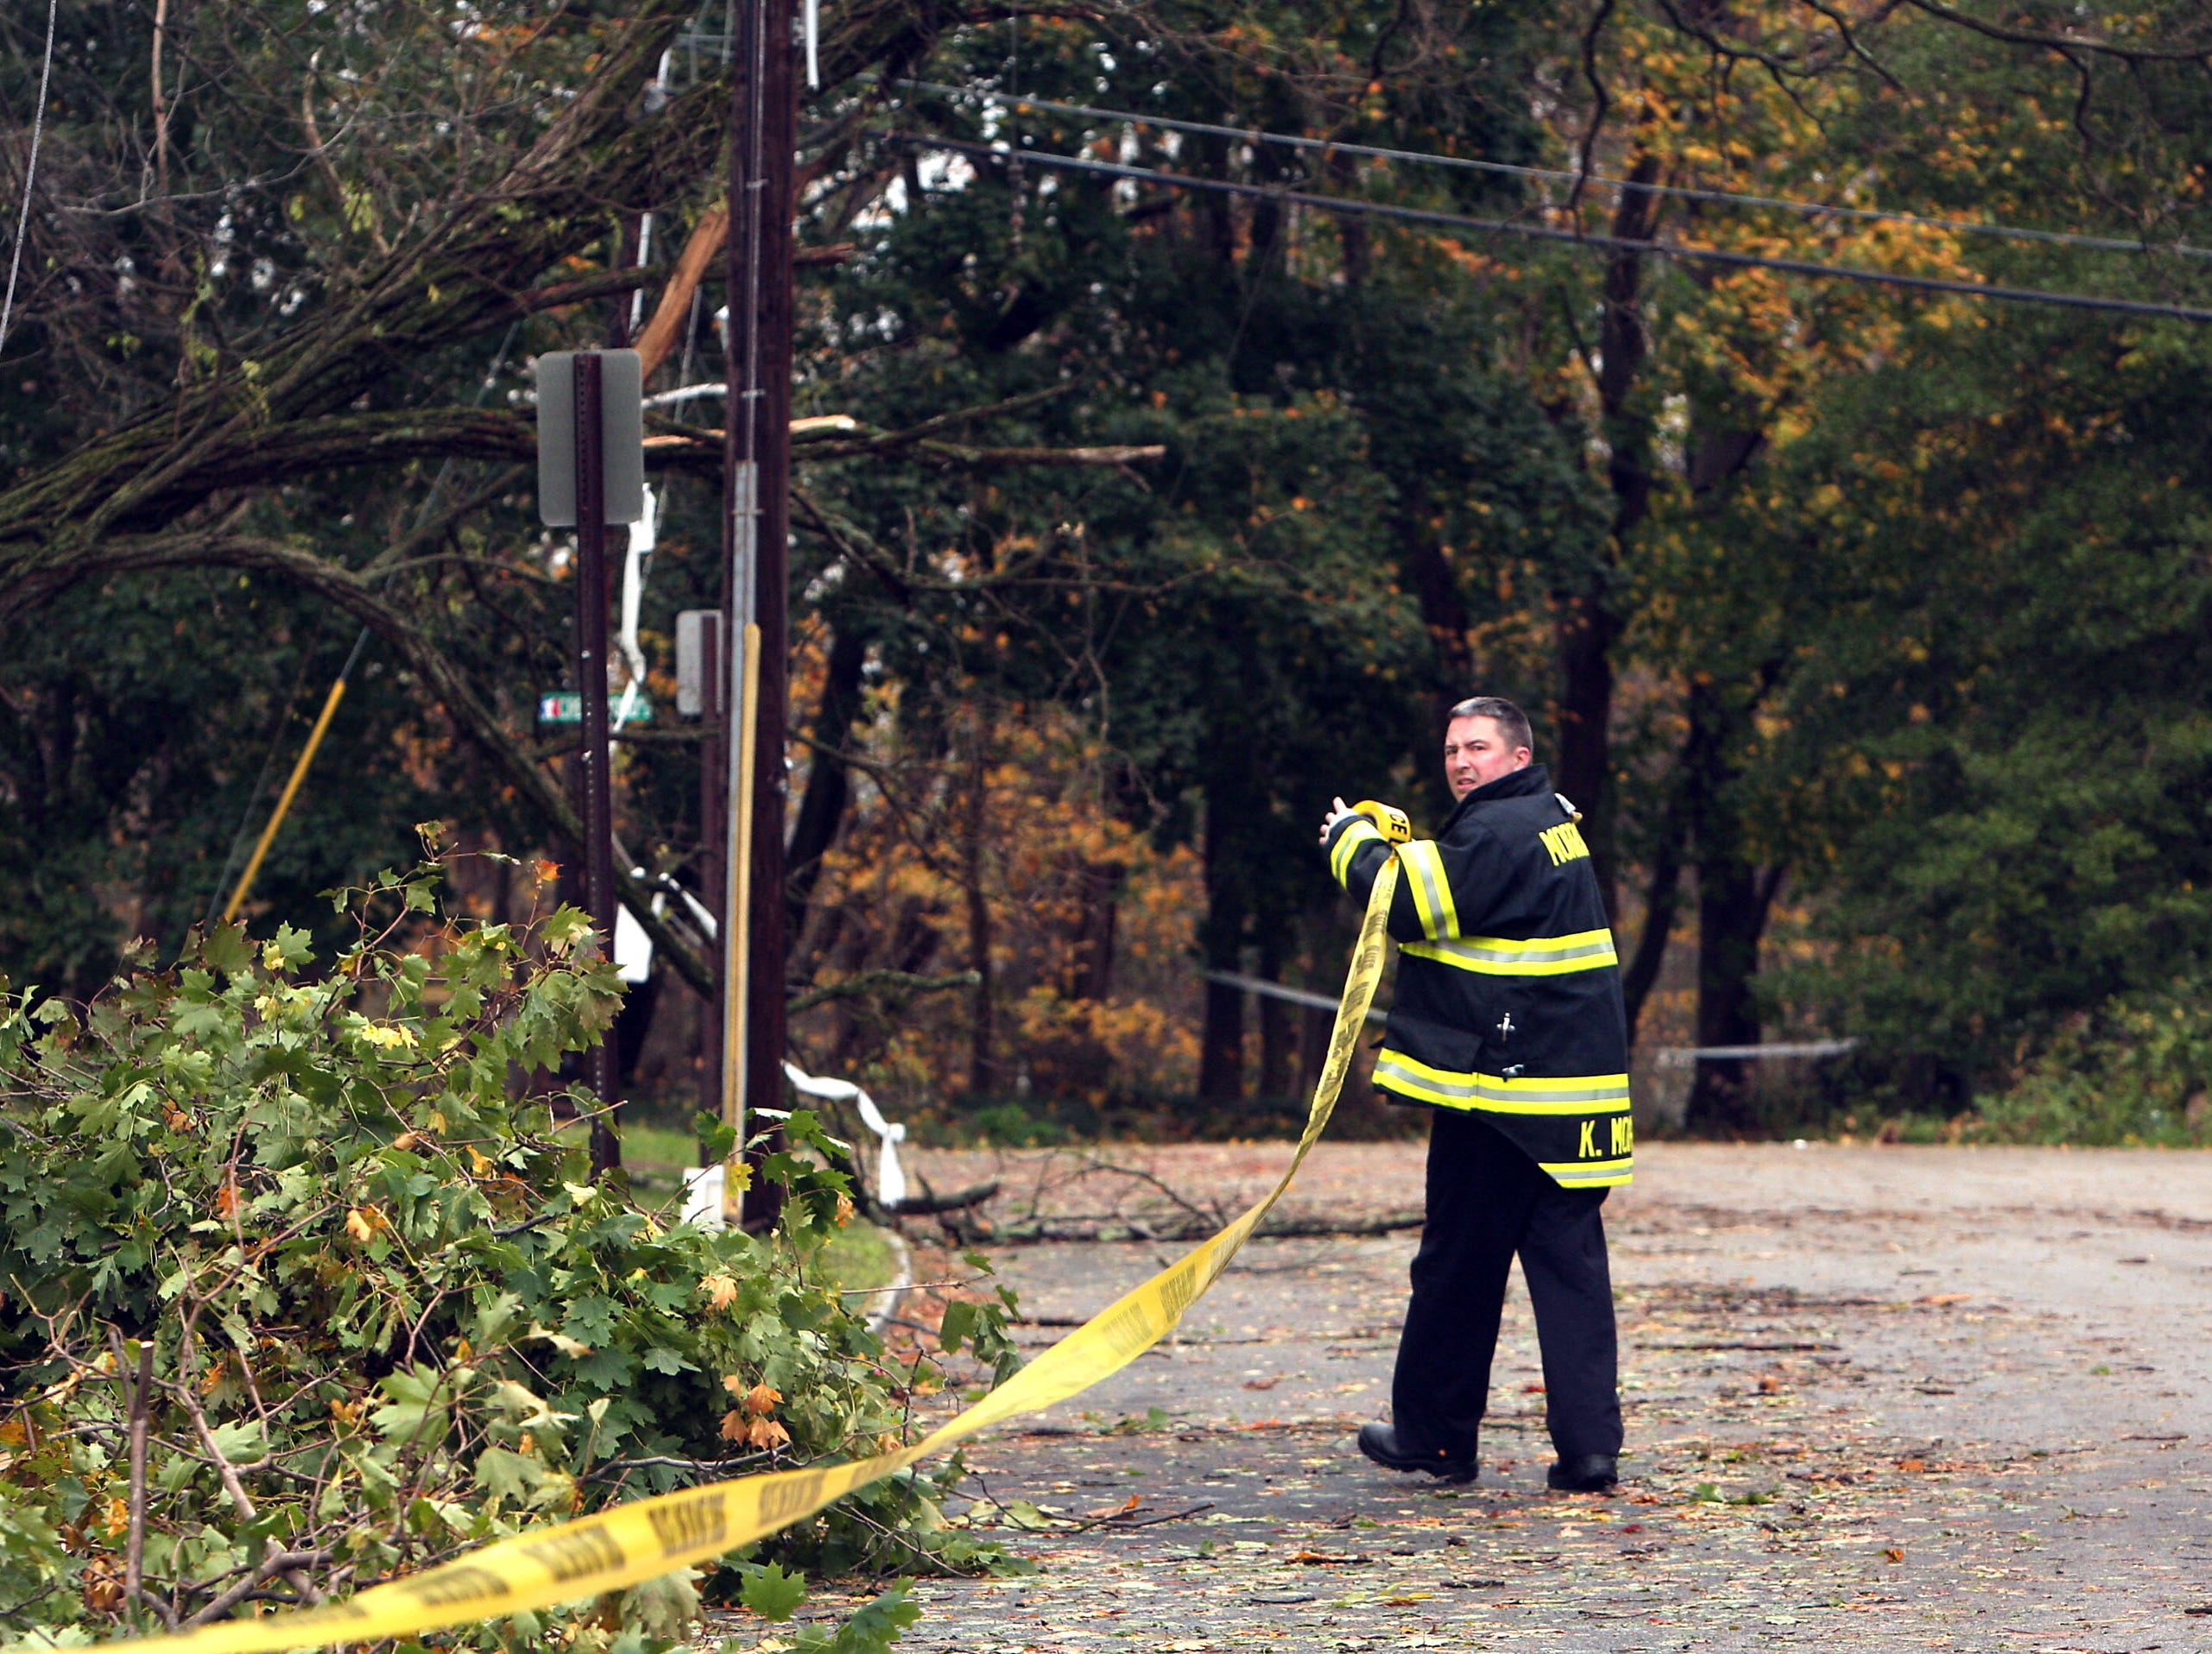 Morristown, NJ-- October 31, 2012--A Morristown Firefighter puts up emergency tape on Glenwood Road in Morristown, NJ in the aftermath of Hurricane Sandy. Bob Karp/Staff Photographer/DAILY RECORD